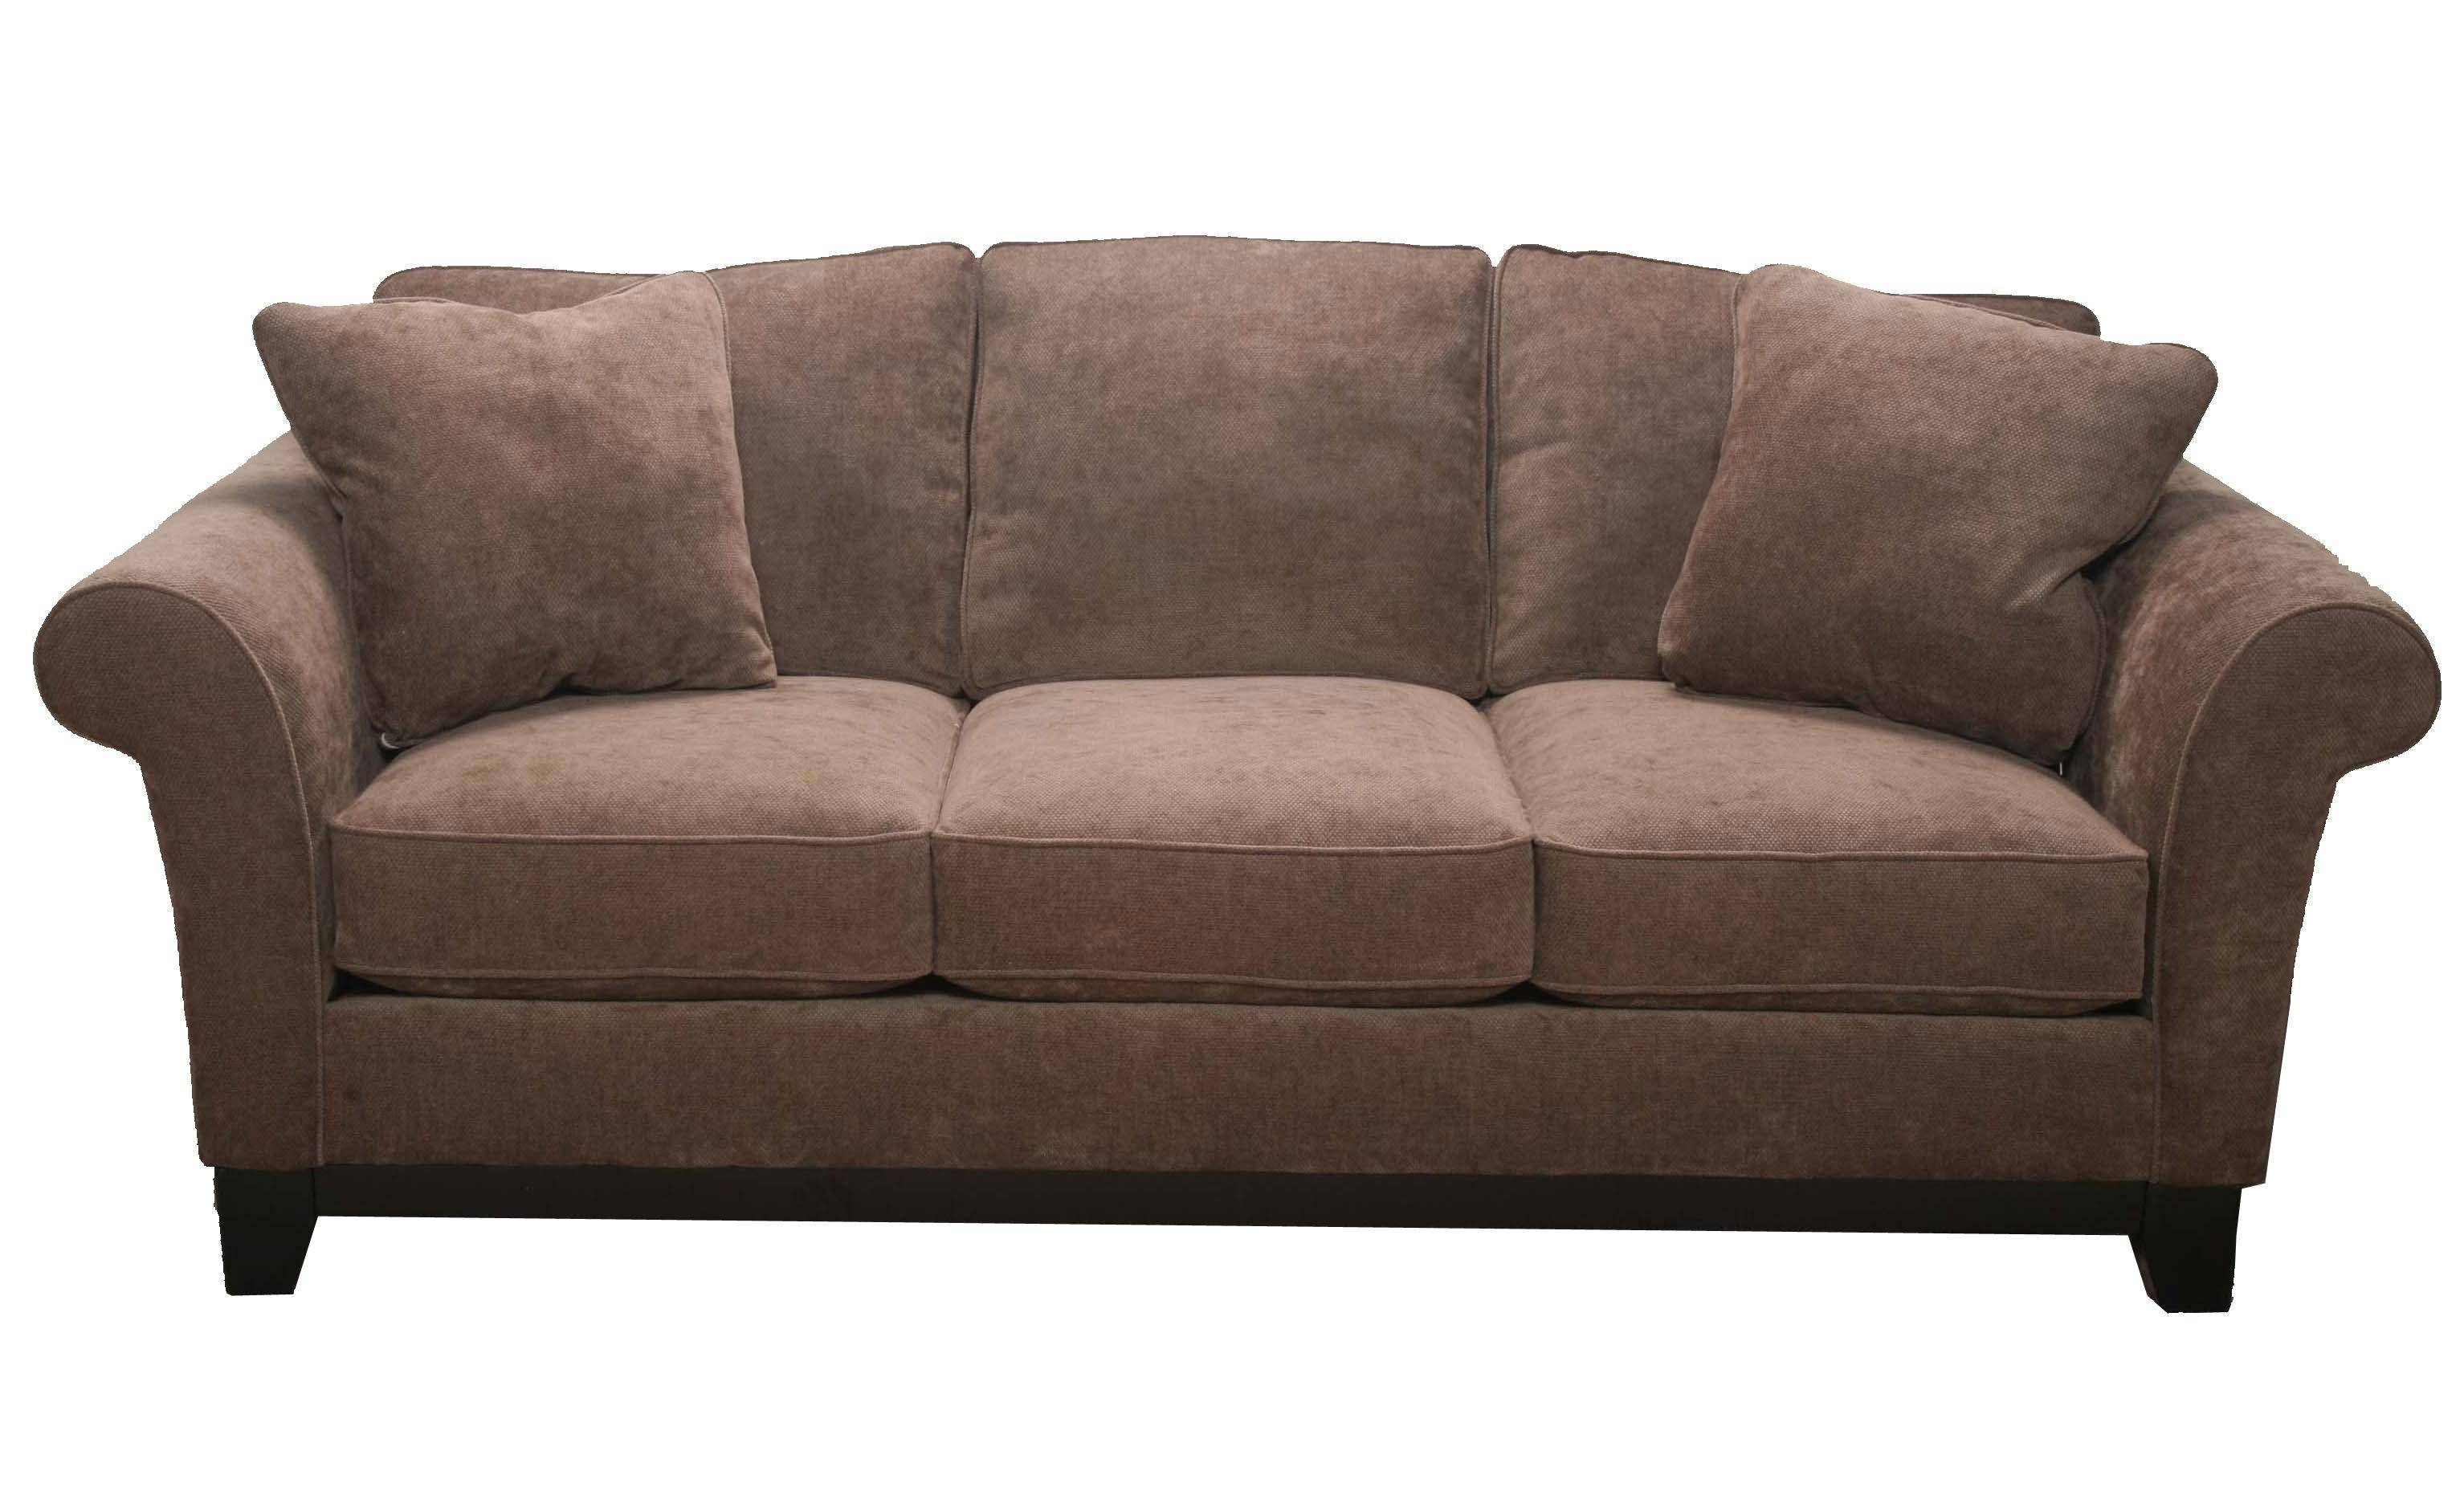 Bauhaus 33Sma Transitional Contemporary Plush Queen Sofa Sleeper regarding Bauhaus Sleeper Sofa (Image 9 of 30)